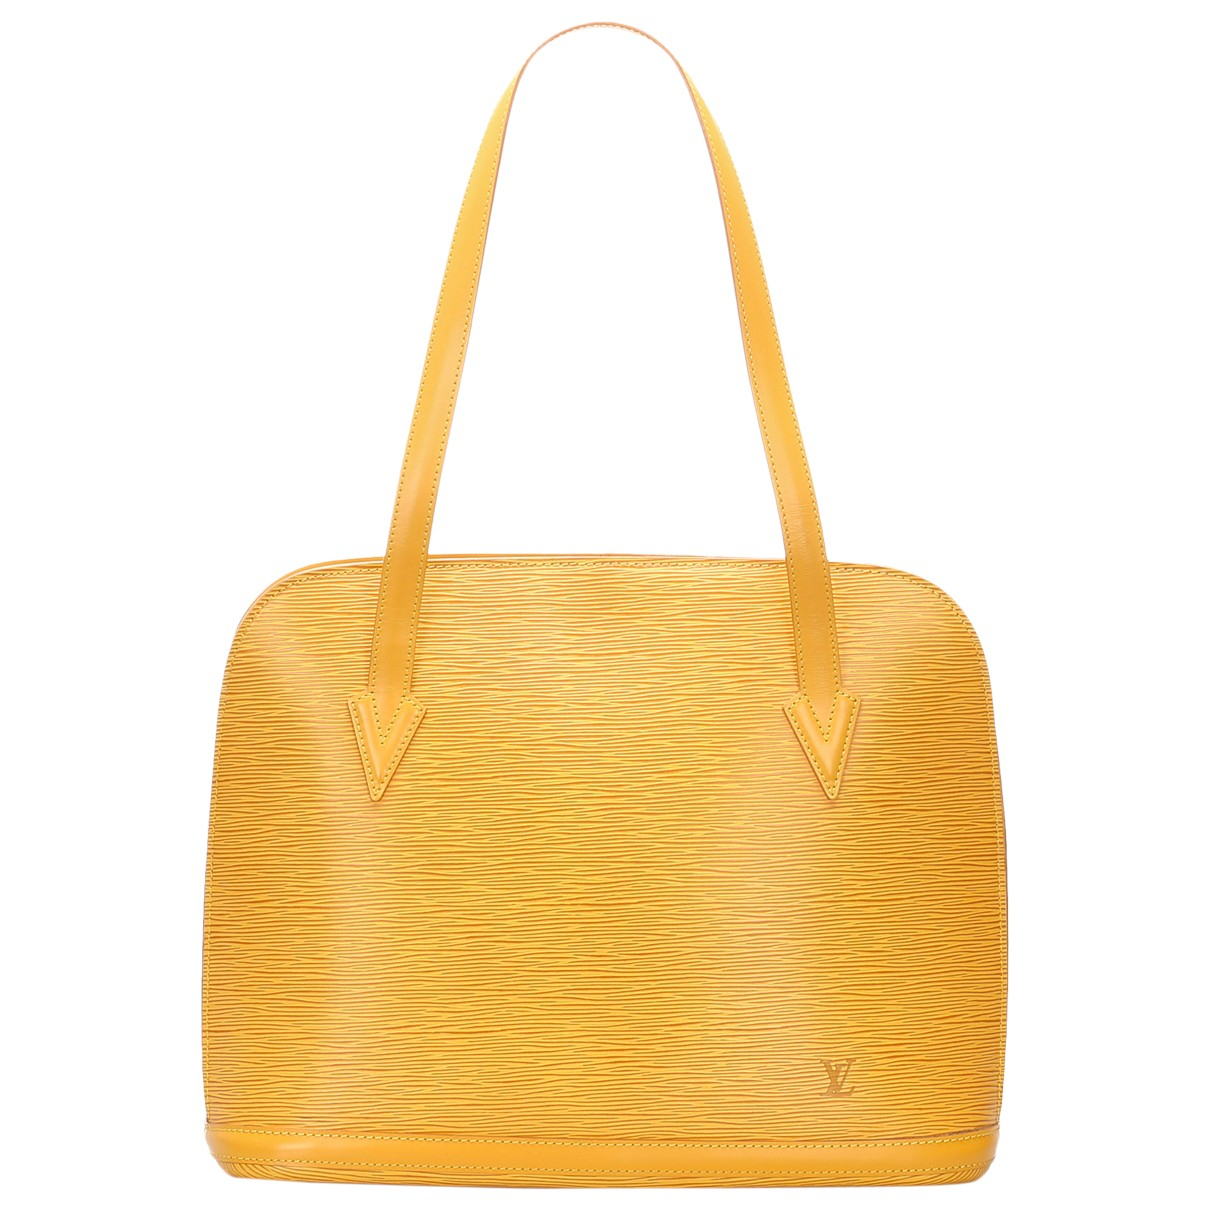 Louis Vuitton \N Yellow Leather handbag for Women \N